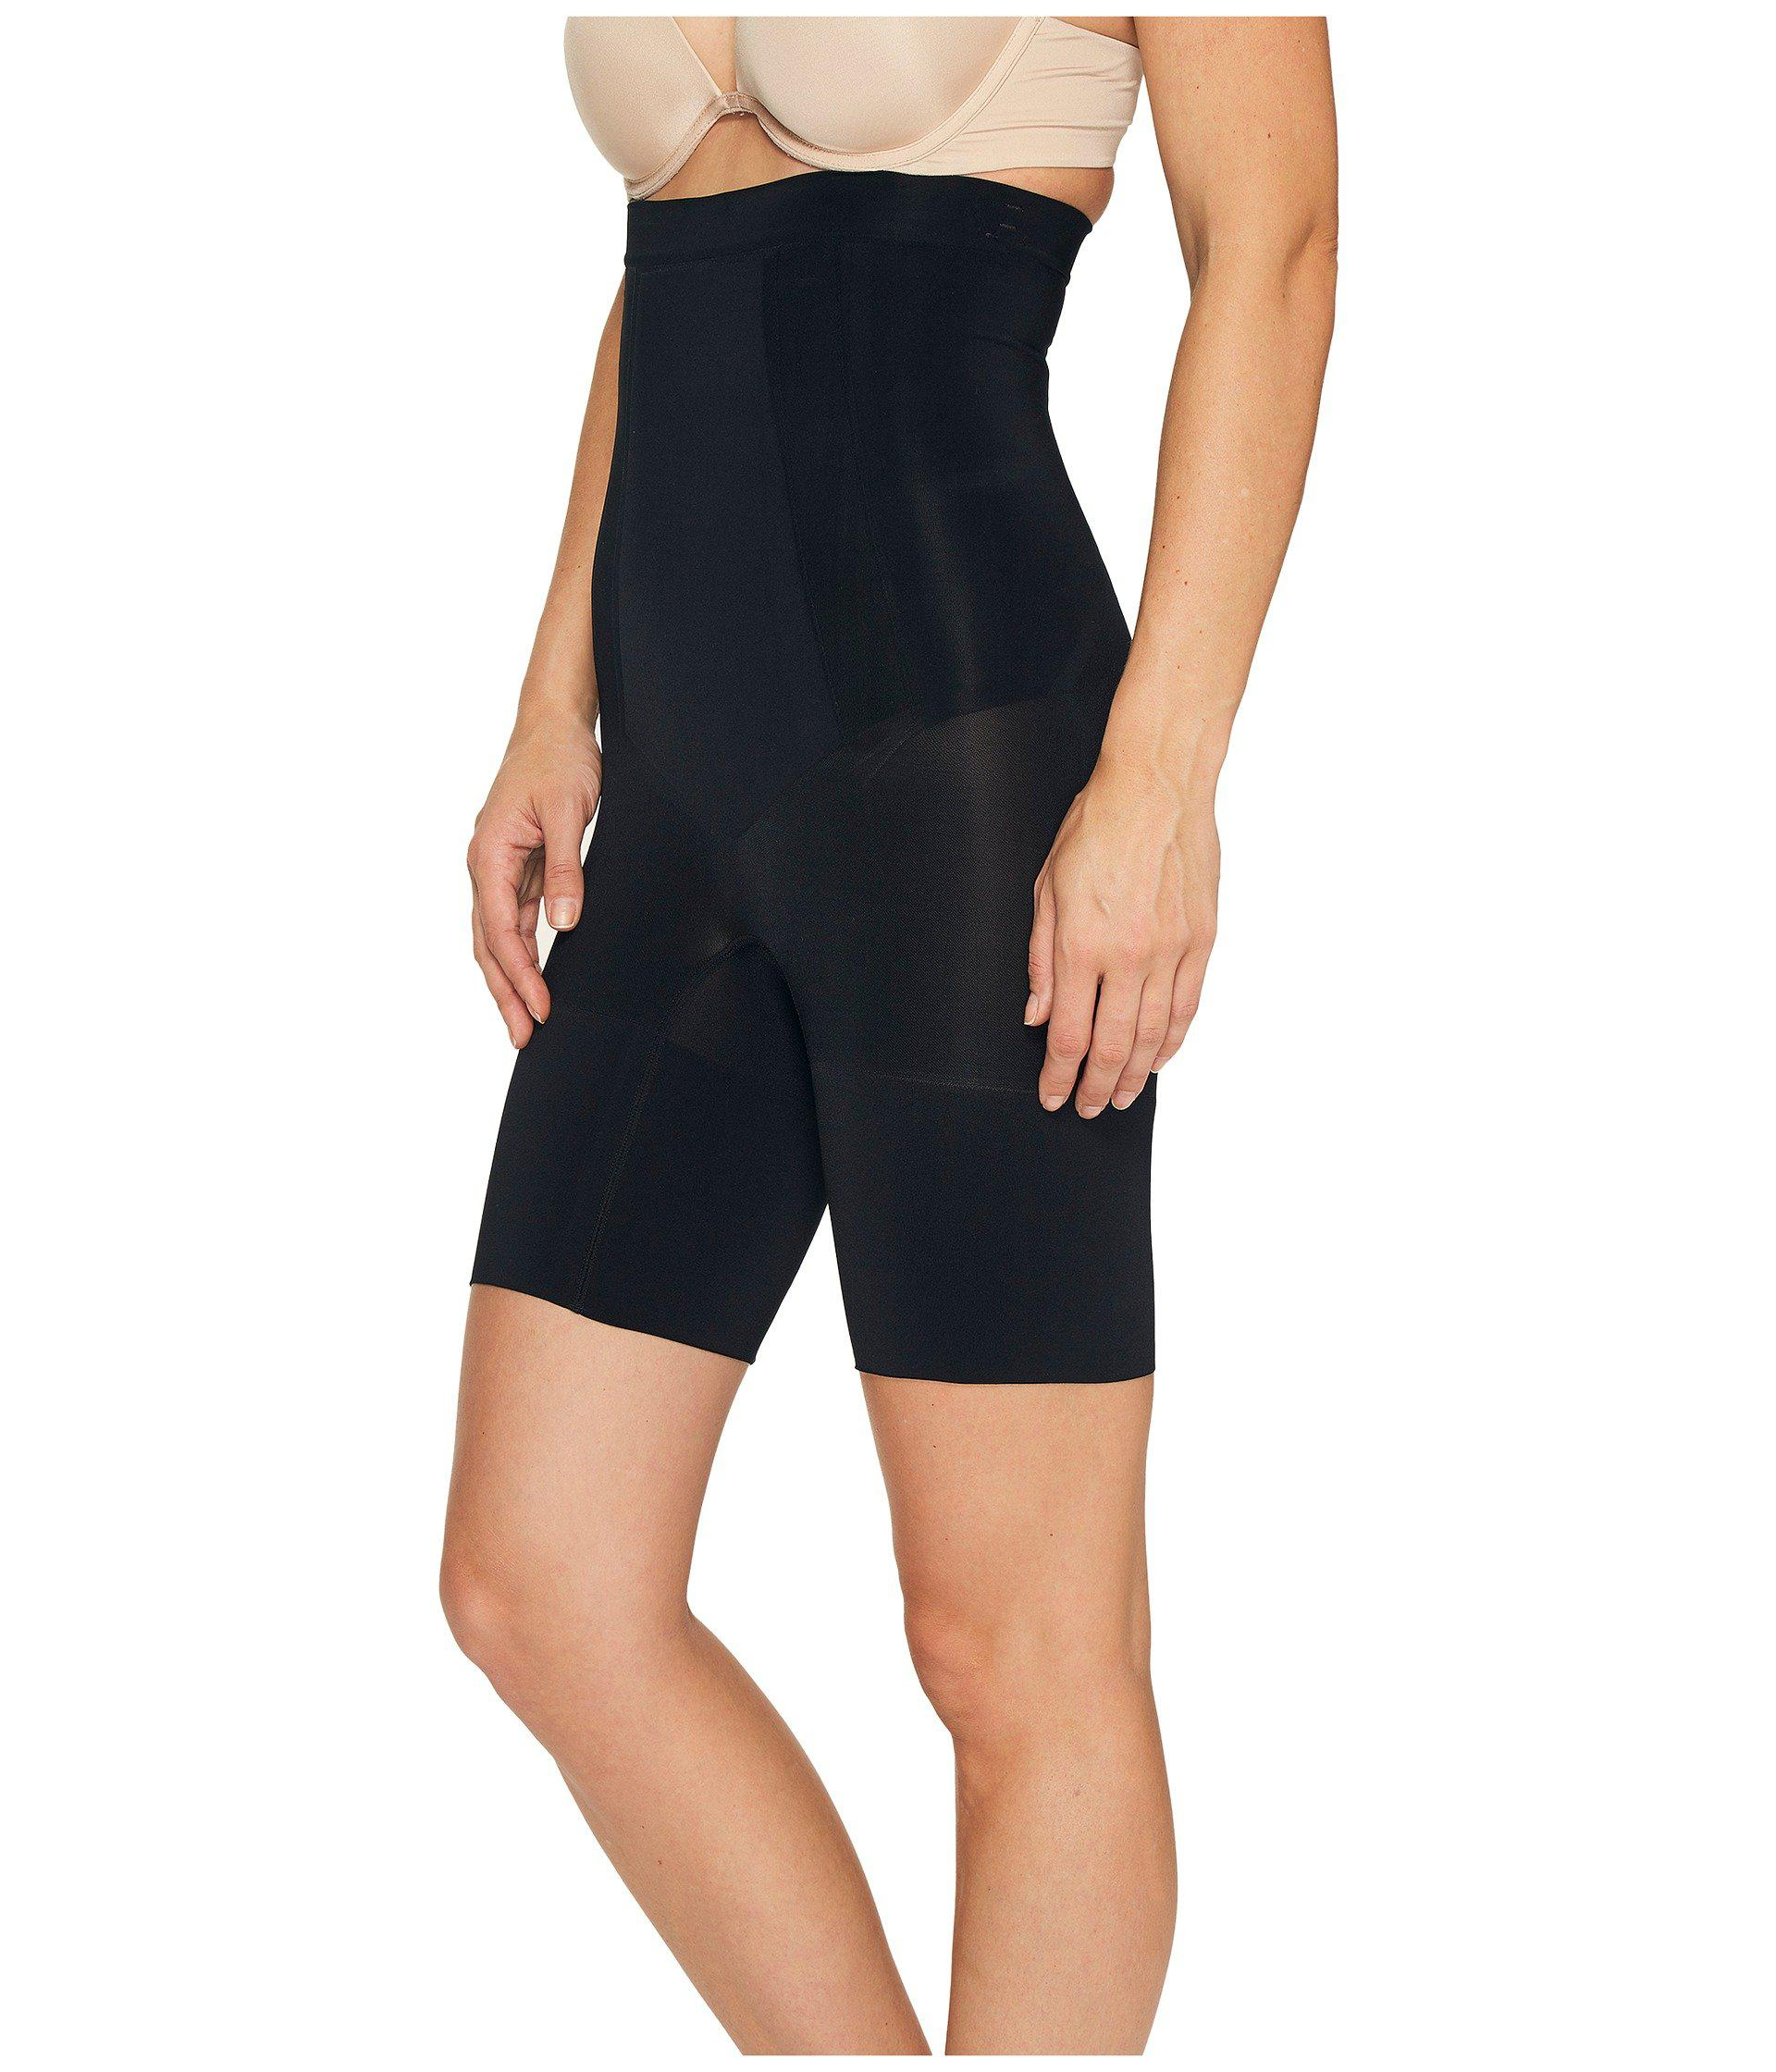 f2ac4ff473 Lyst - Spanx Oncore High-waisted Mid-thigh Short (very Black) Women s  Underwear in Black